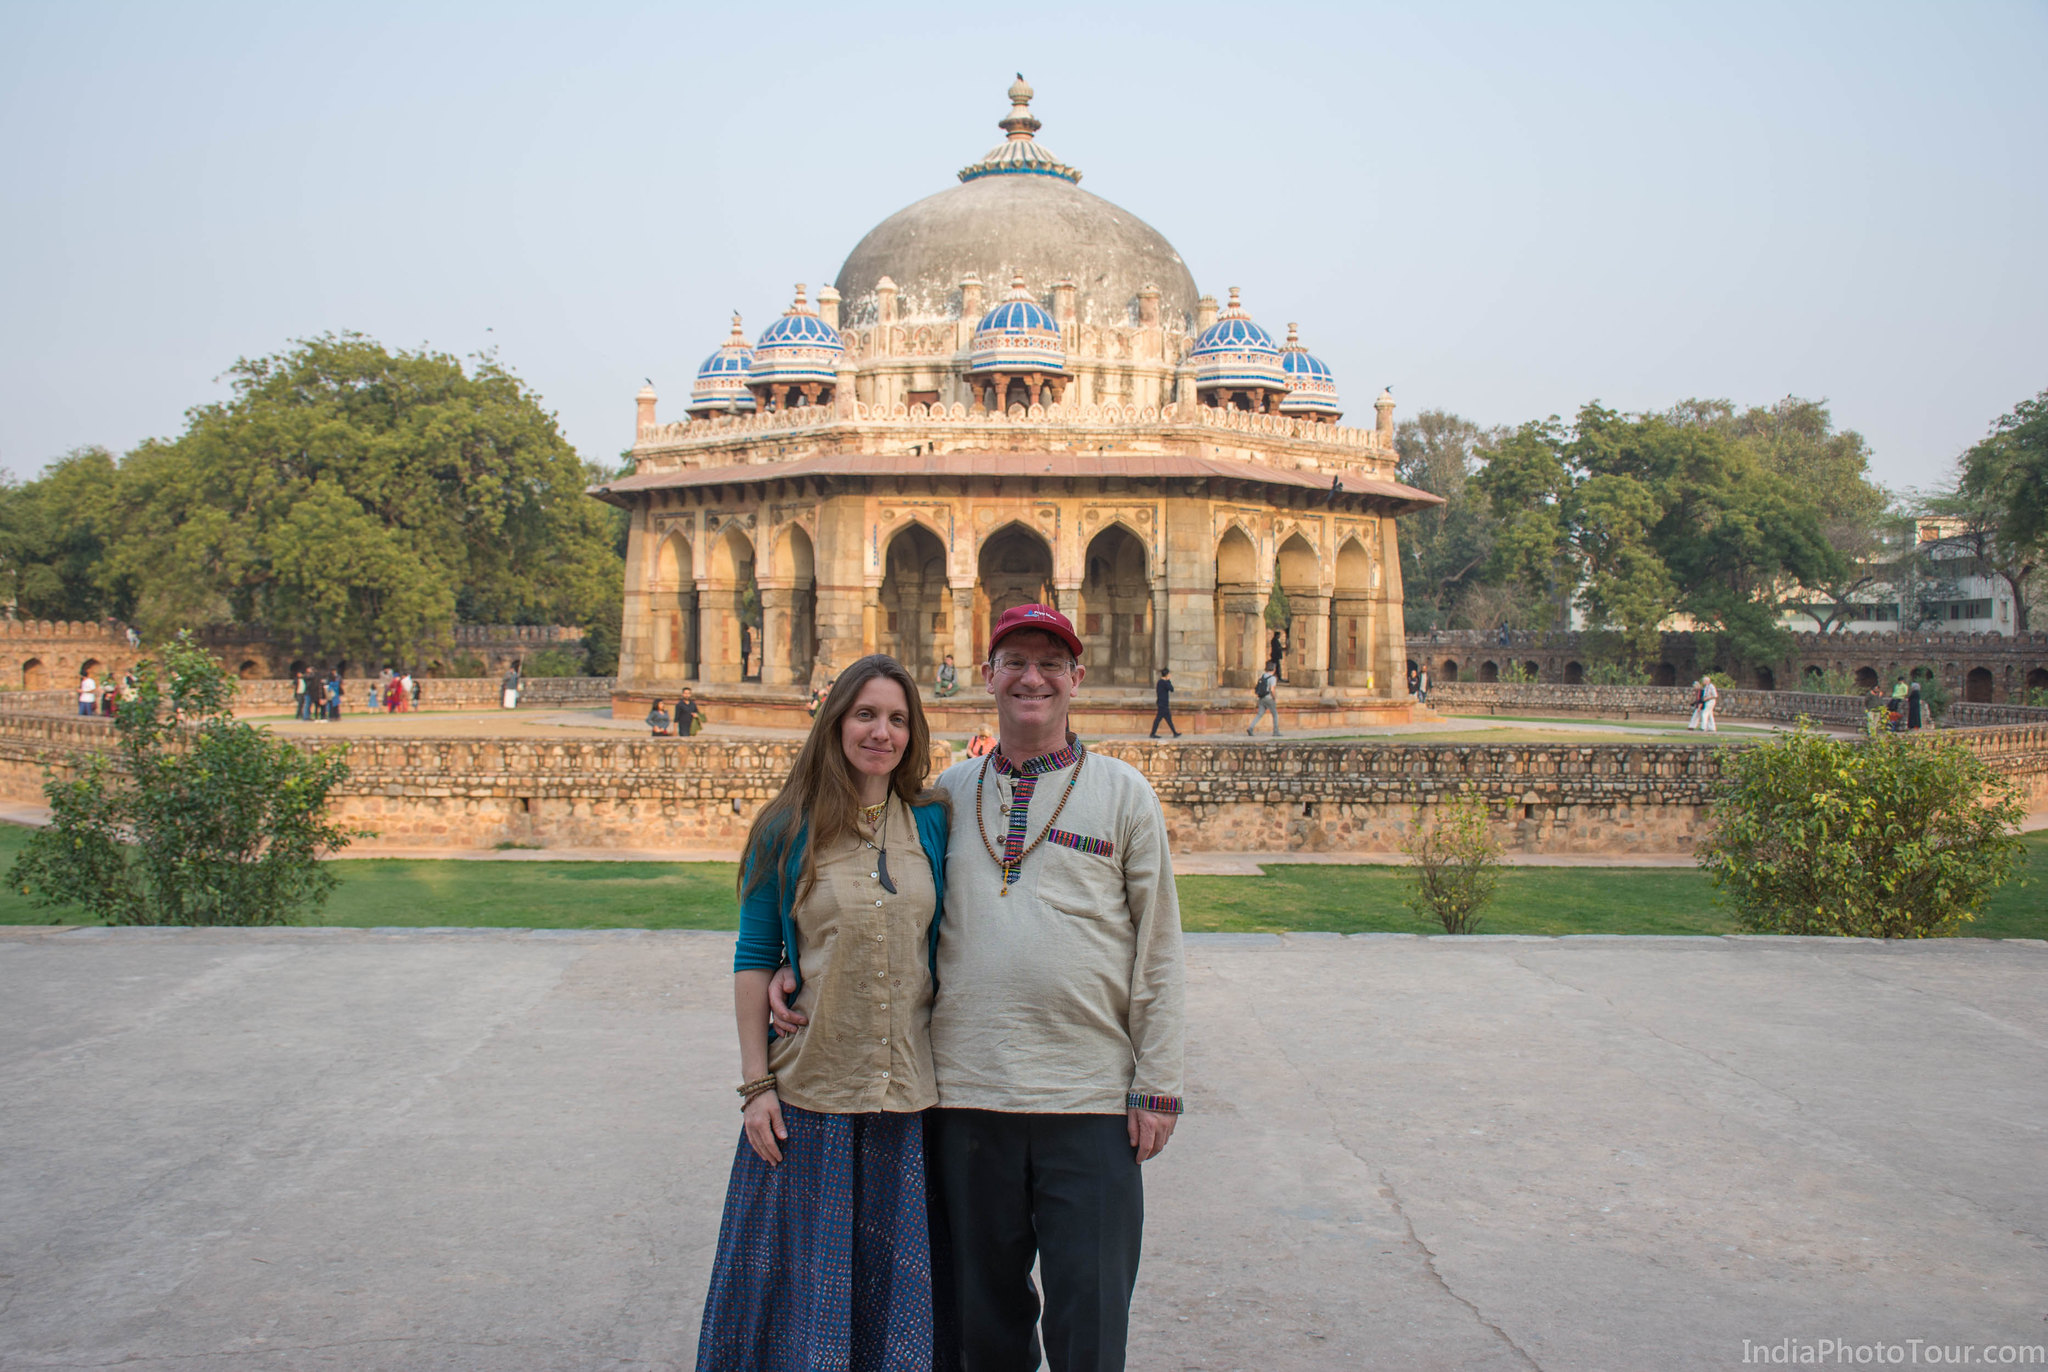 Posing for a picture at Isa Khan's tomb in Humayun's Tomb complex